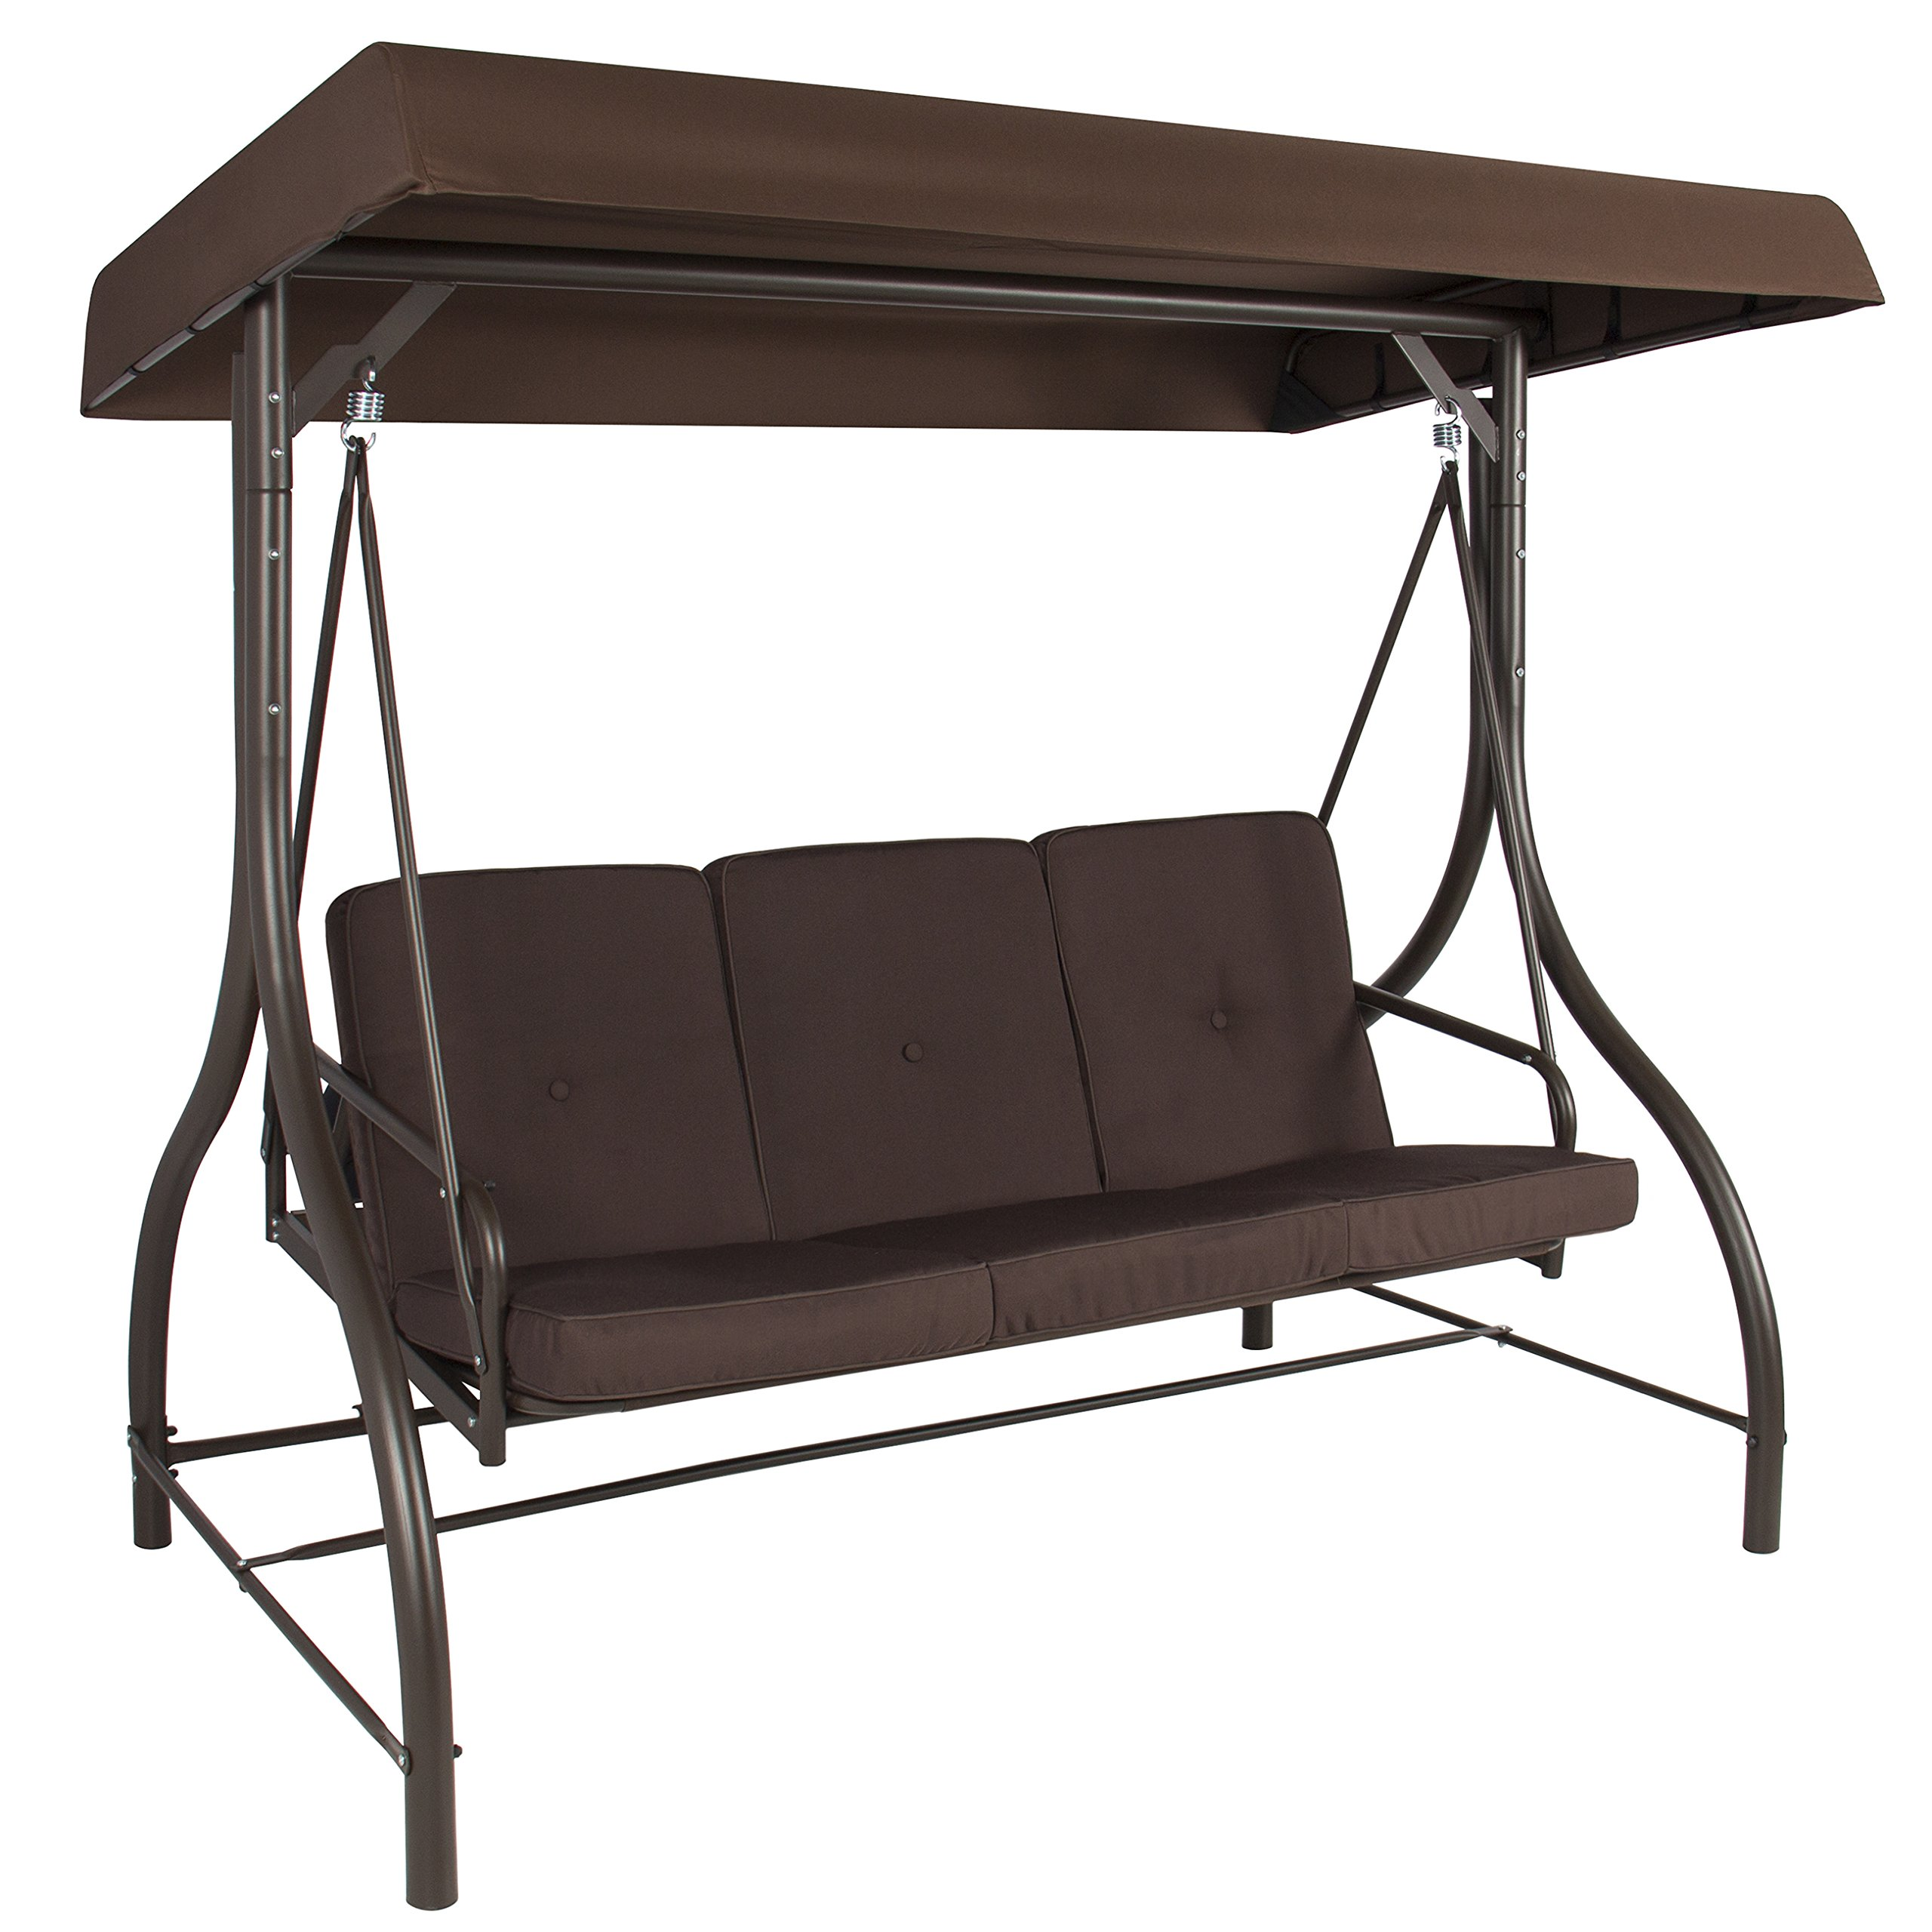 Best Choice Products Converting Outdoor Swing Canopy Hammock Seats 3 Patio Deck Furniture, Brown